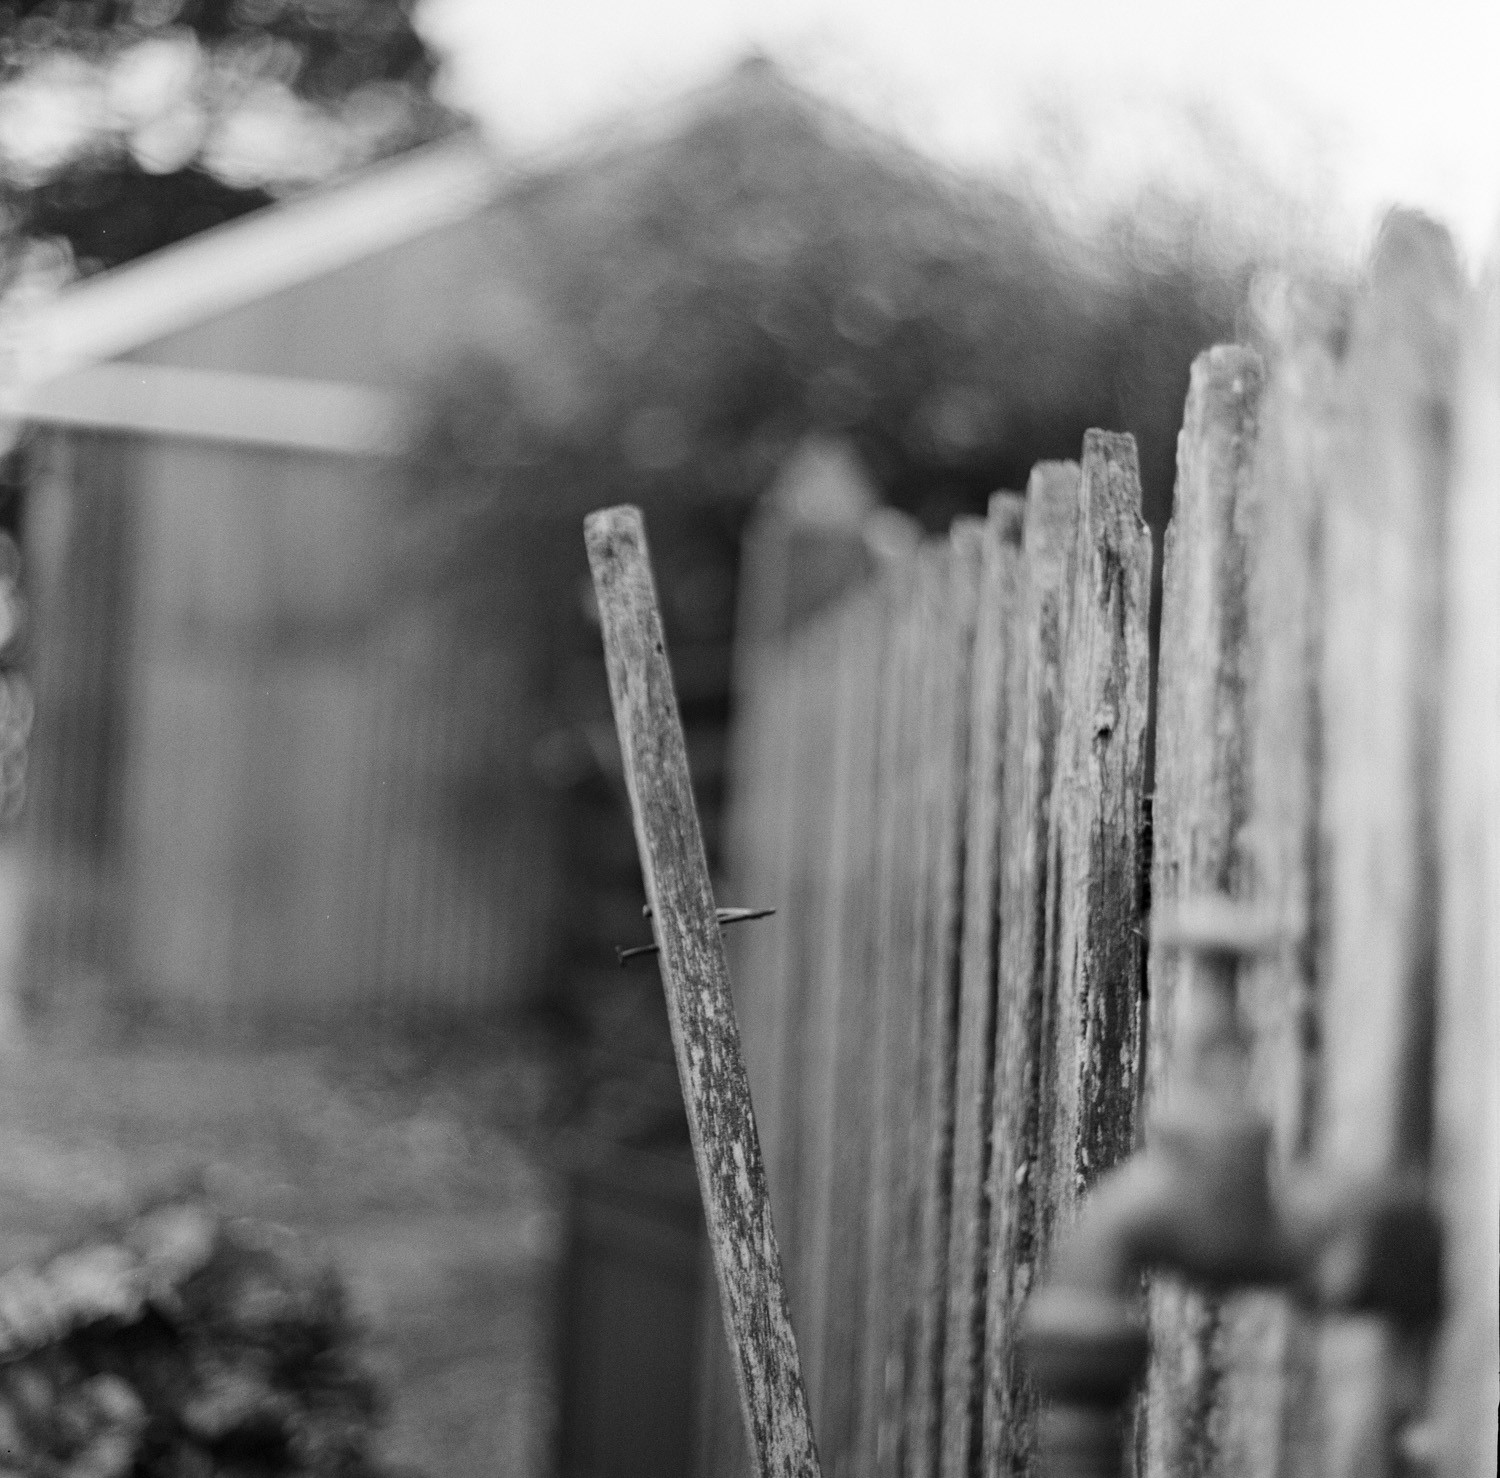 Broken fence post  Film: Ilford Delta 400 Lens: 80 mm f/2.8 Exposure:  not recorded